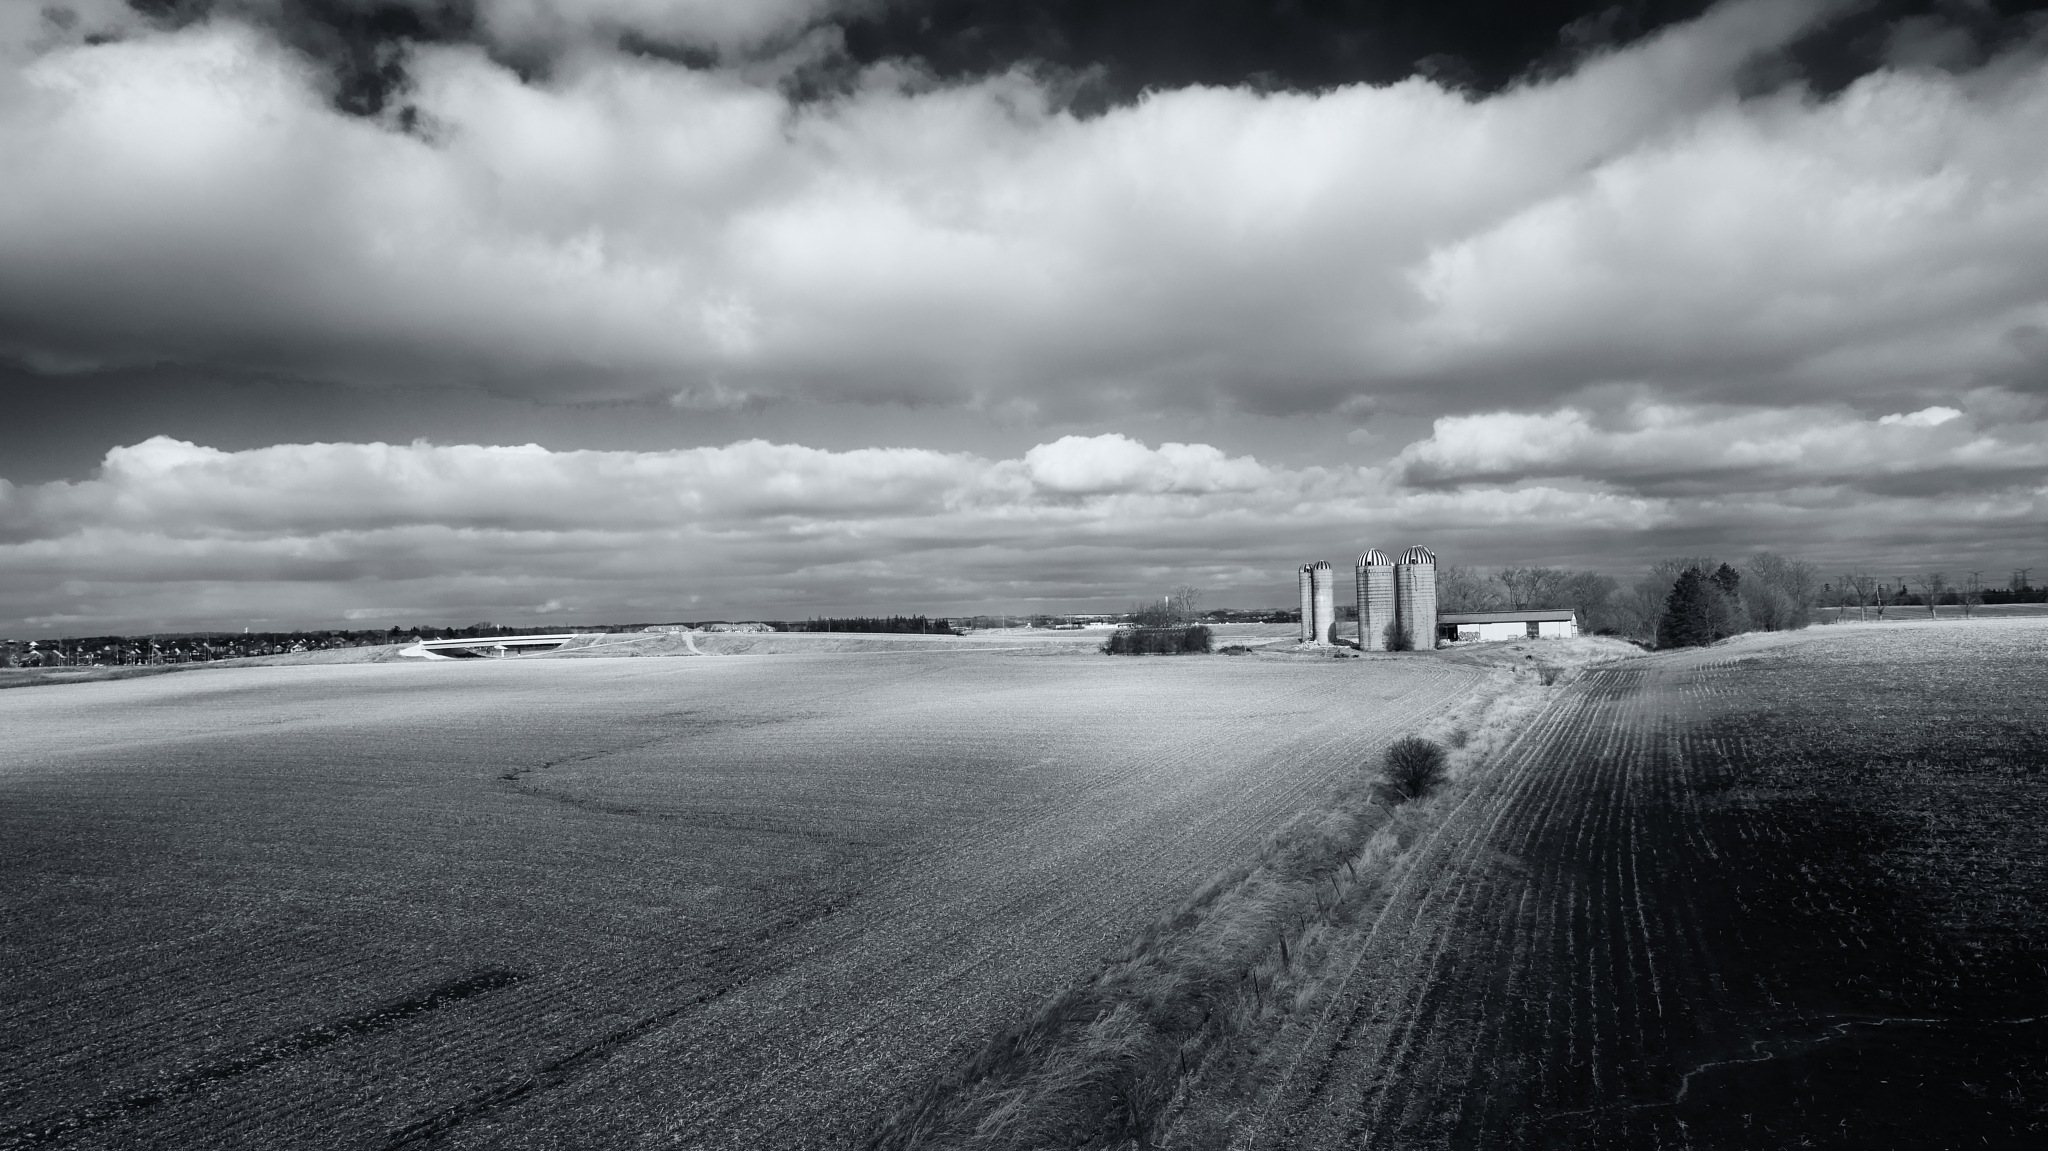 Abandoned Silos by Herb Drummond